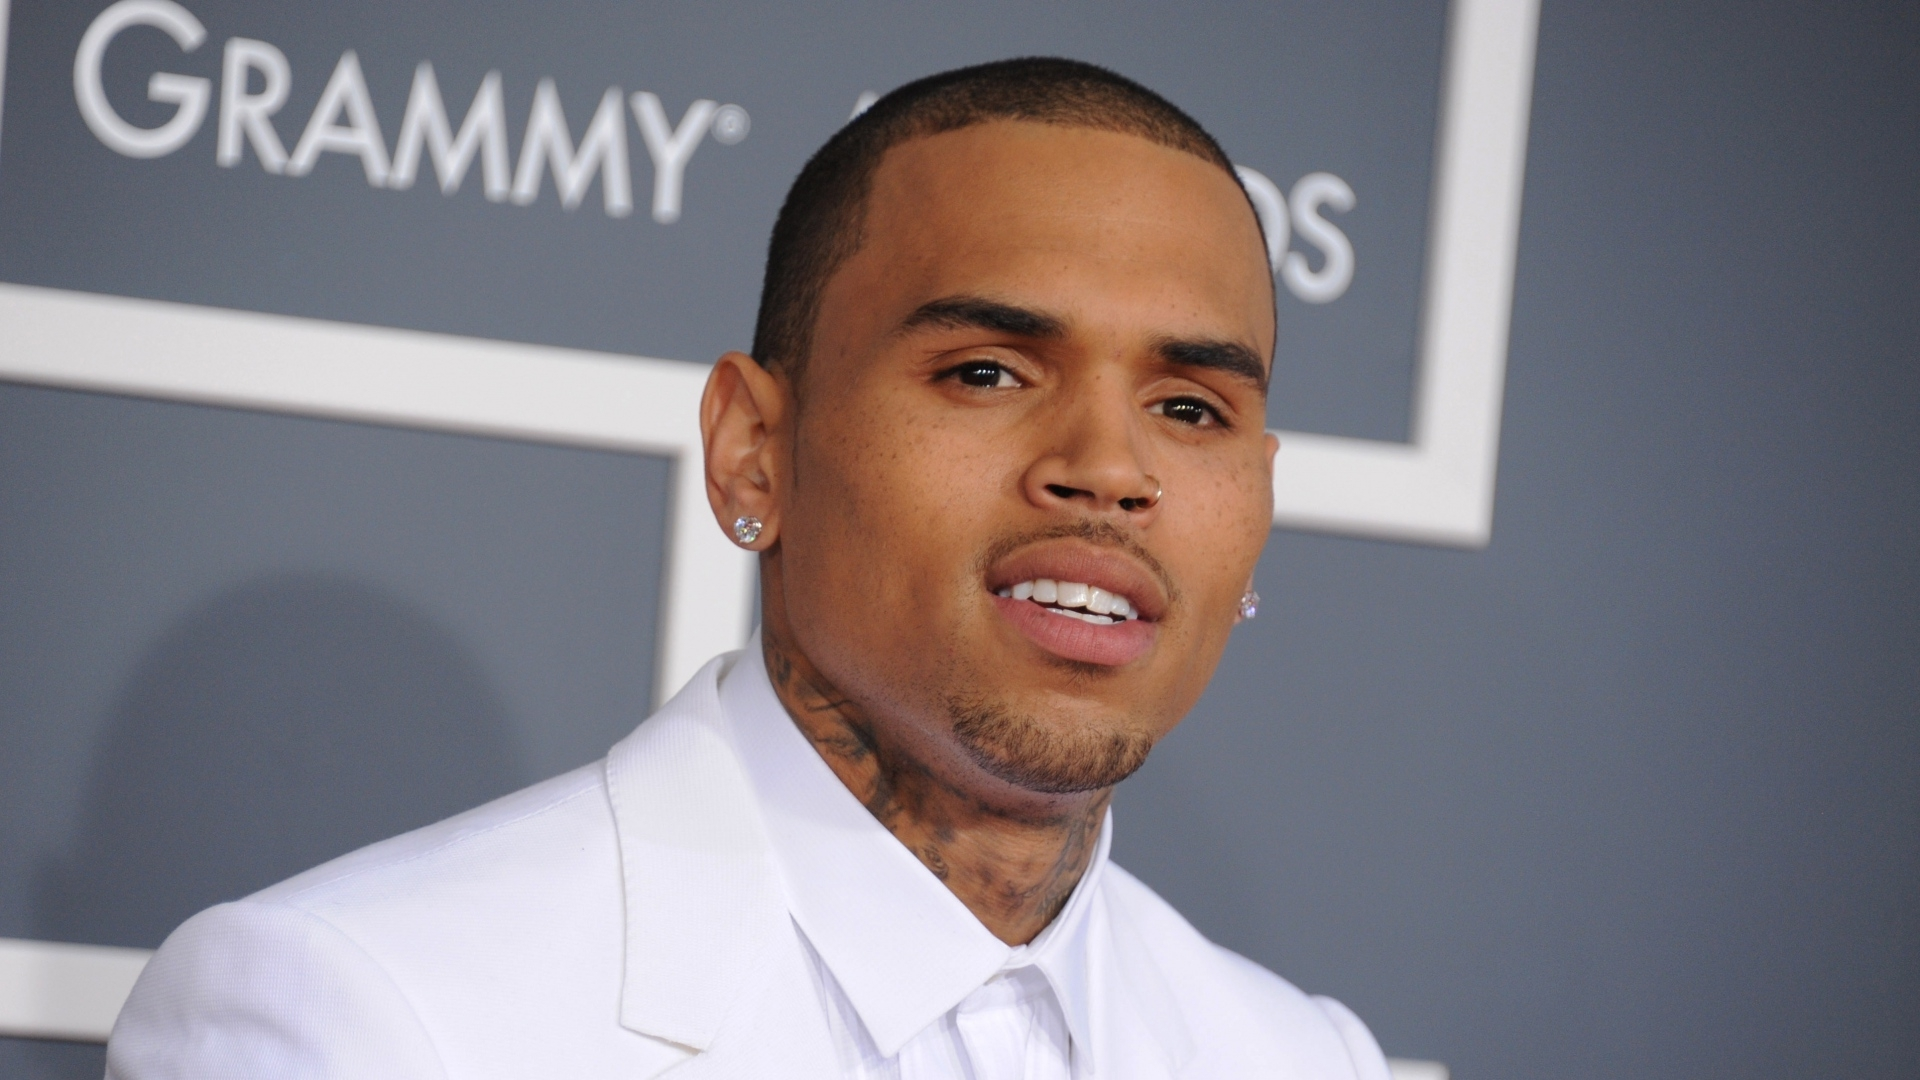 chris brown full hd wallpaper and background image | 1920x1080 | id